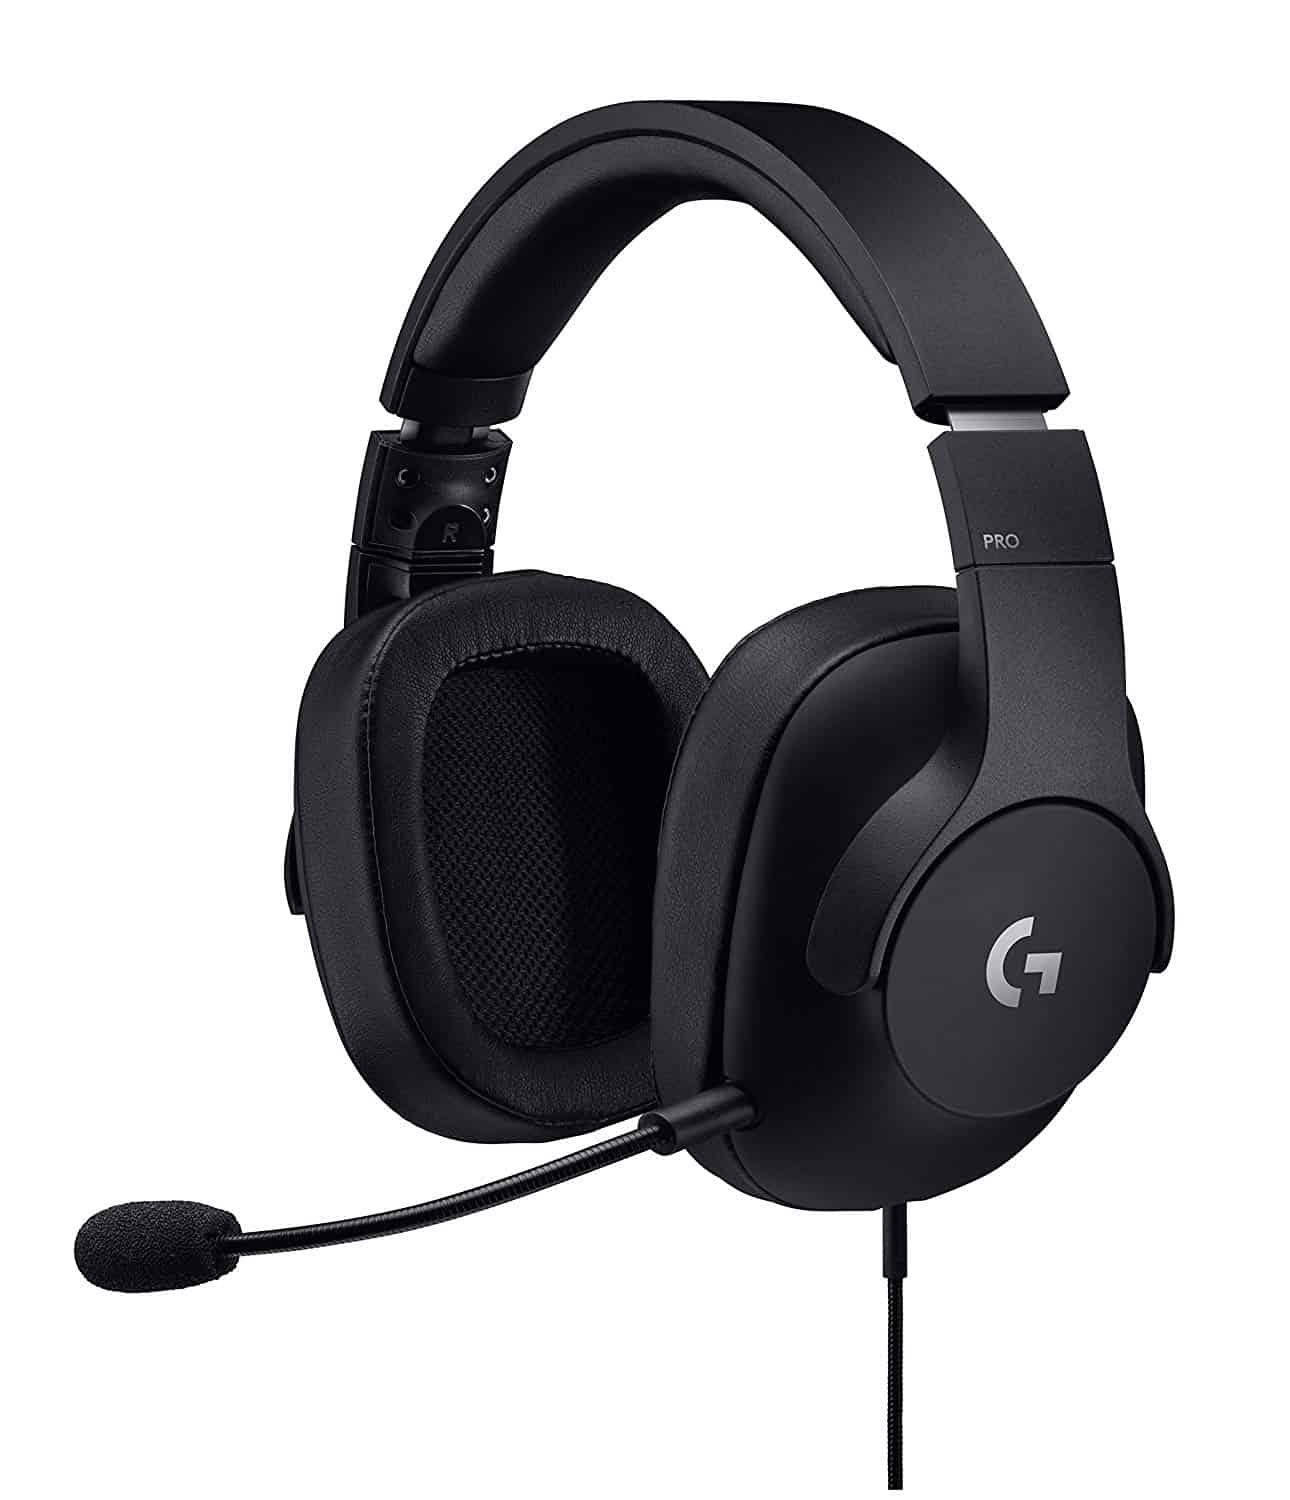 The 10 Best Gaming Headsets for Discord (2019)